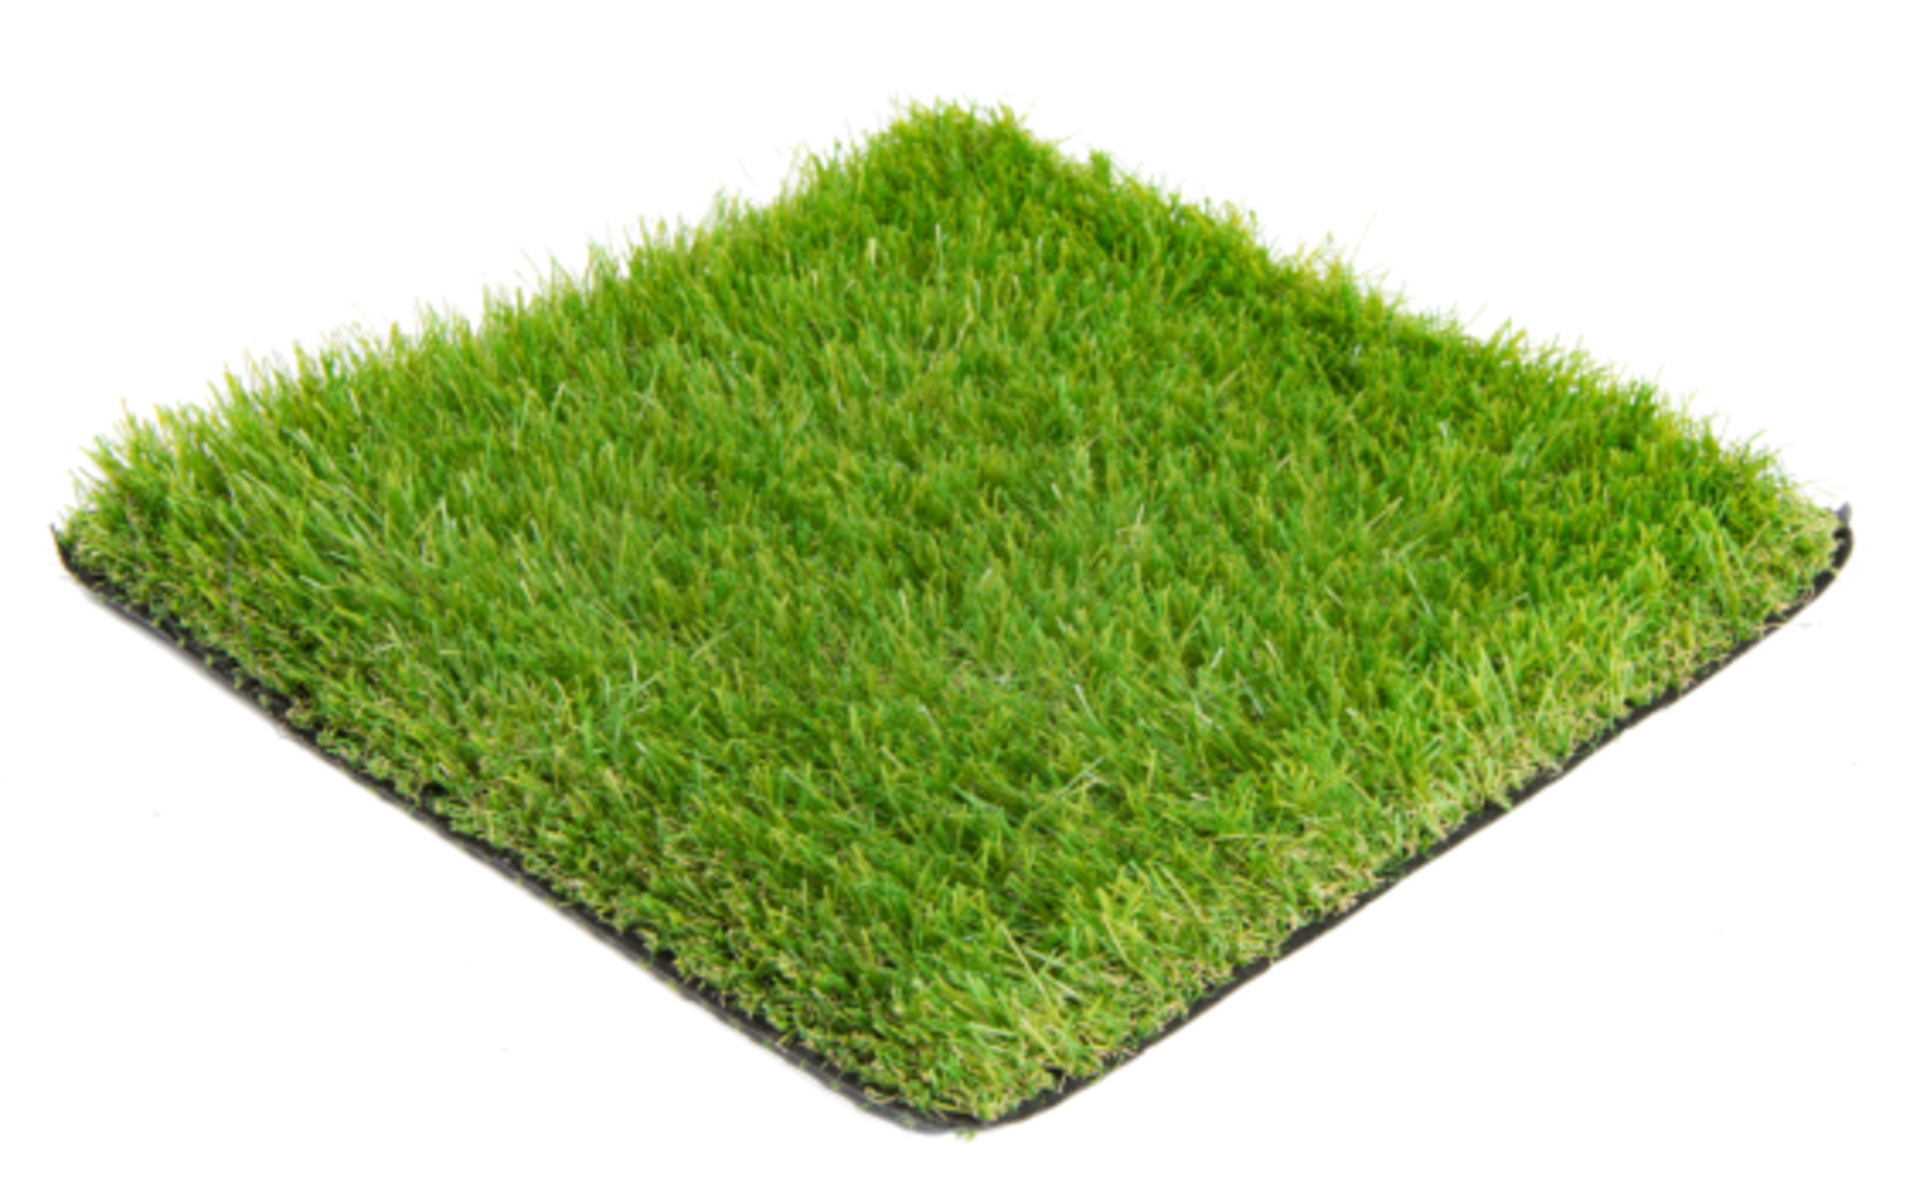 Lot 8 - A Half Roll of Natural 35 Artificial Grass, 12.5 meters x 4 meters